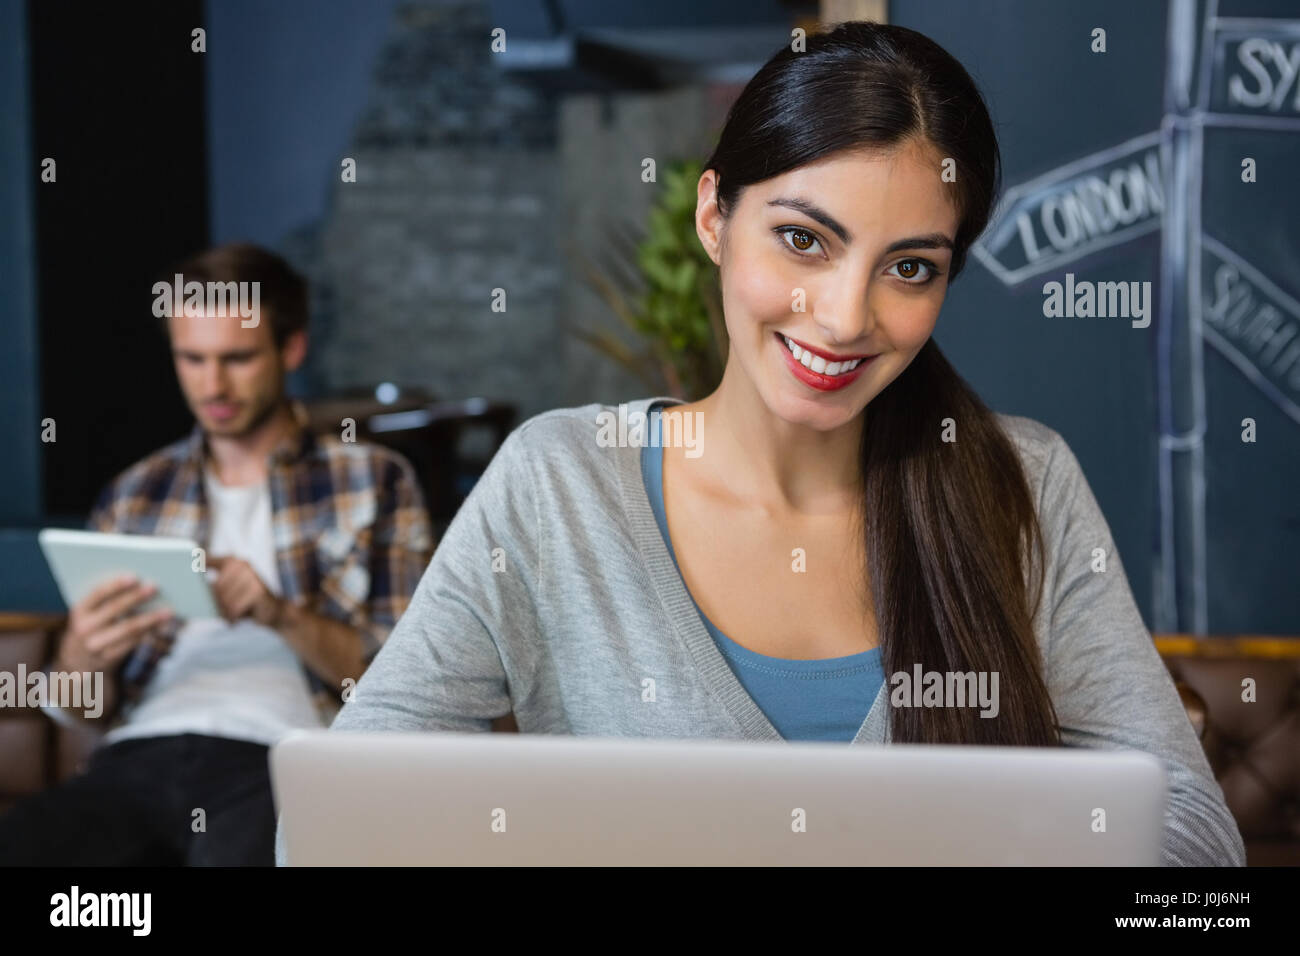 Portrait of young woman using laptop in café - Stock Image